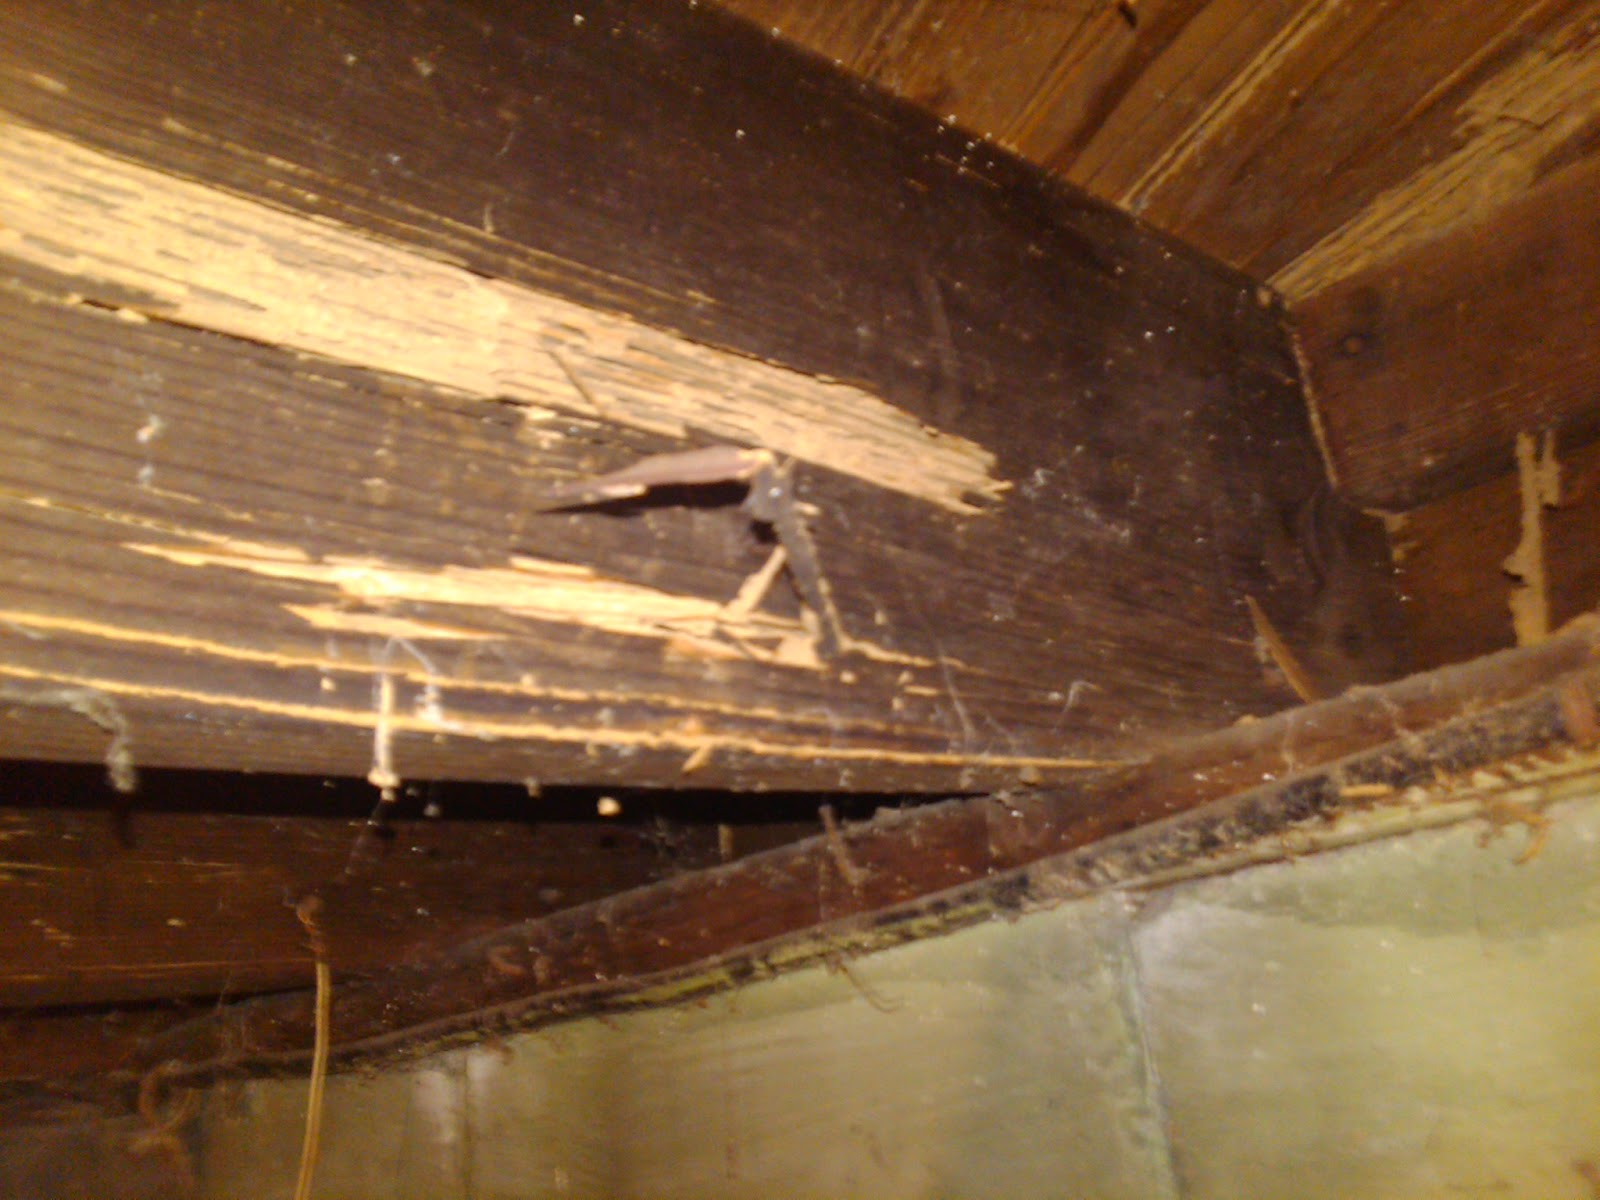 Prime Pest Solutions Termite Damage Greatest Risk To Your